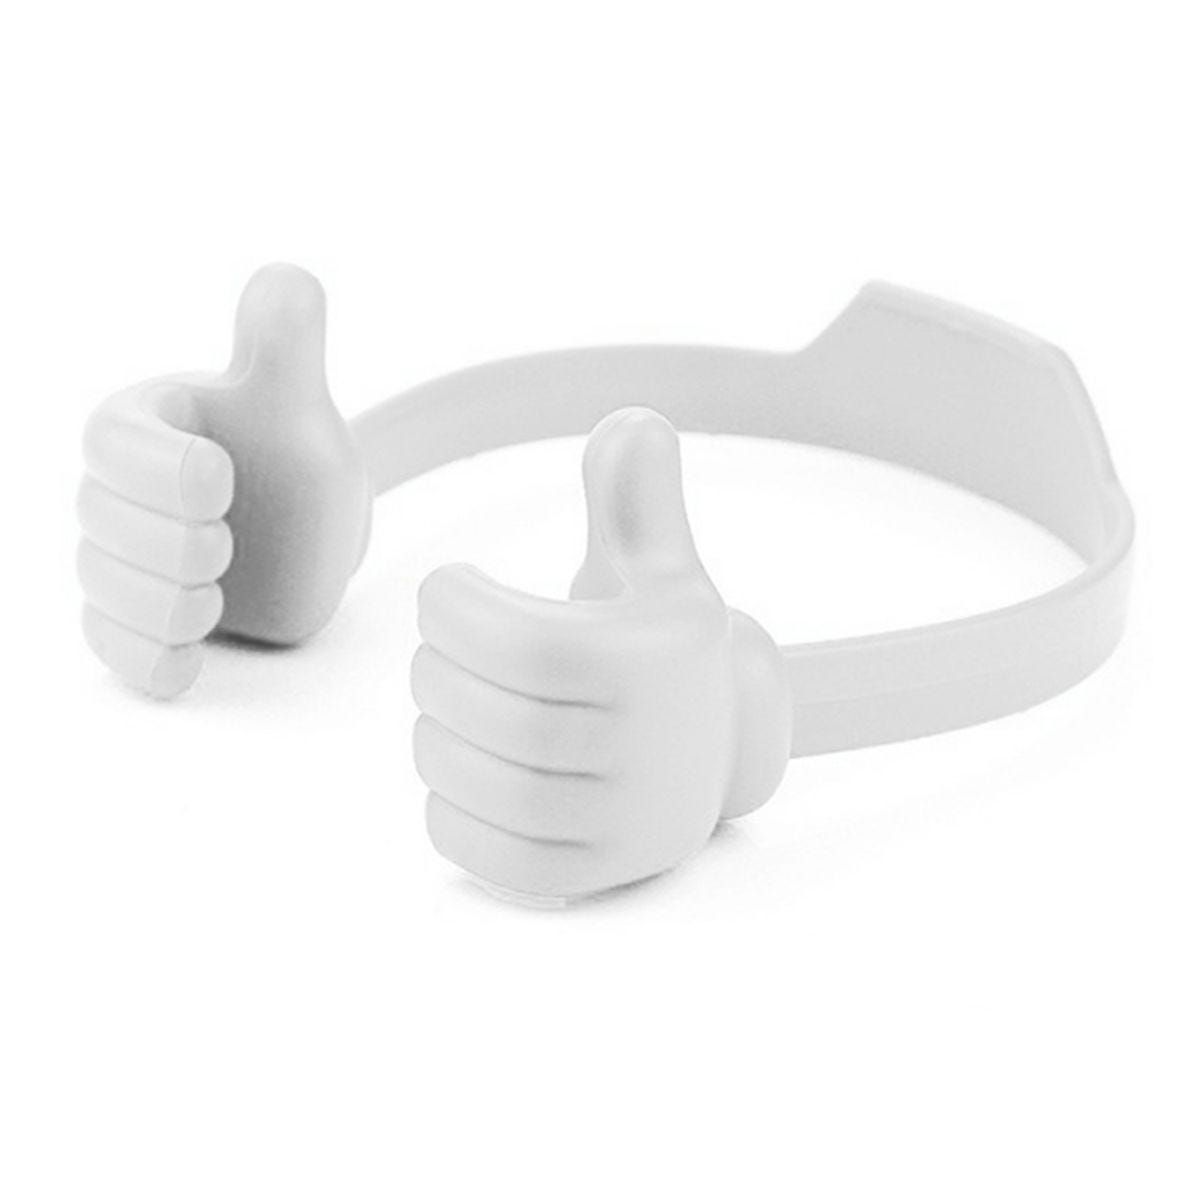 Thumbs-Up Phone Holder - White